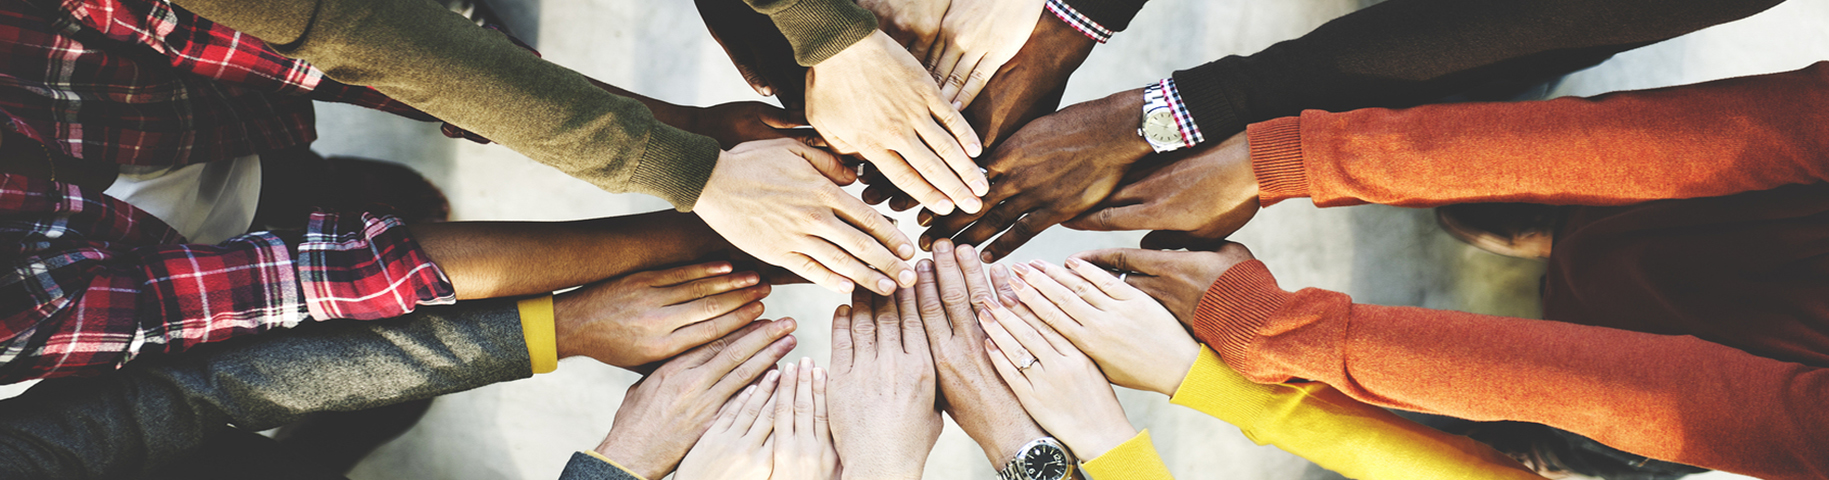 Banner image of the hands of many different people all together in the center of a circle.